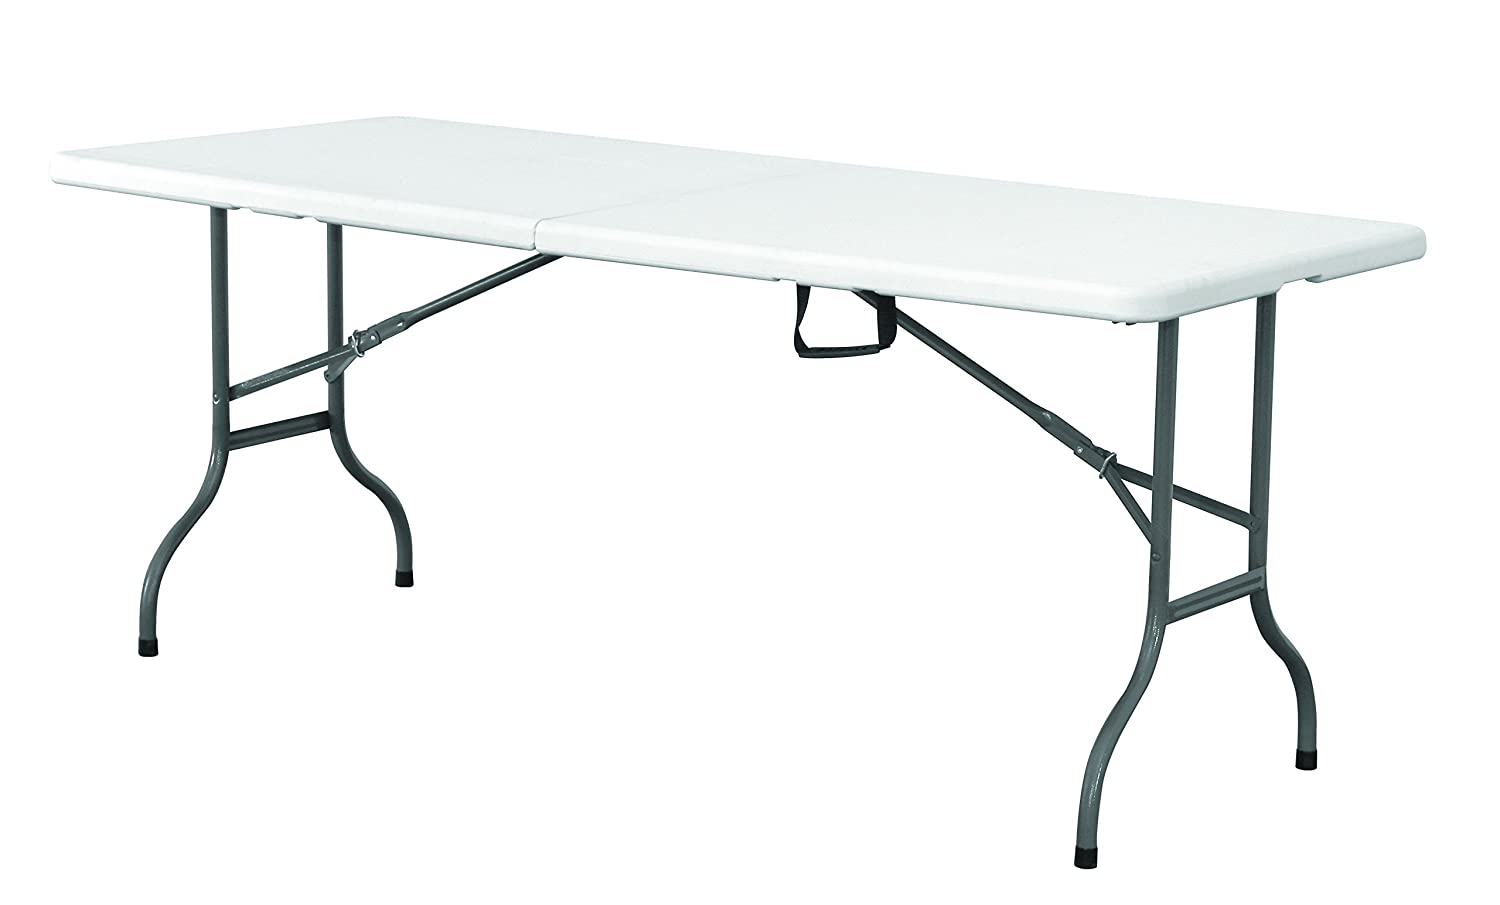 EazyGoods 5 Foot Folding Plastic Table with Carry Handle, White, 150 x 70 x 74 cm Eazy Goods Ltd 5FT